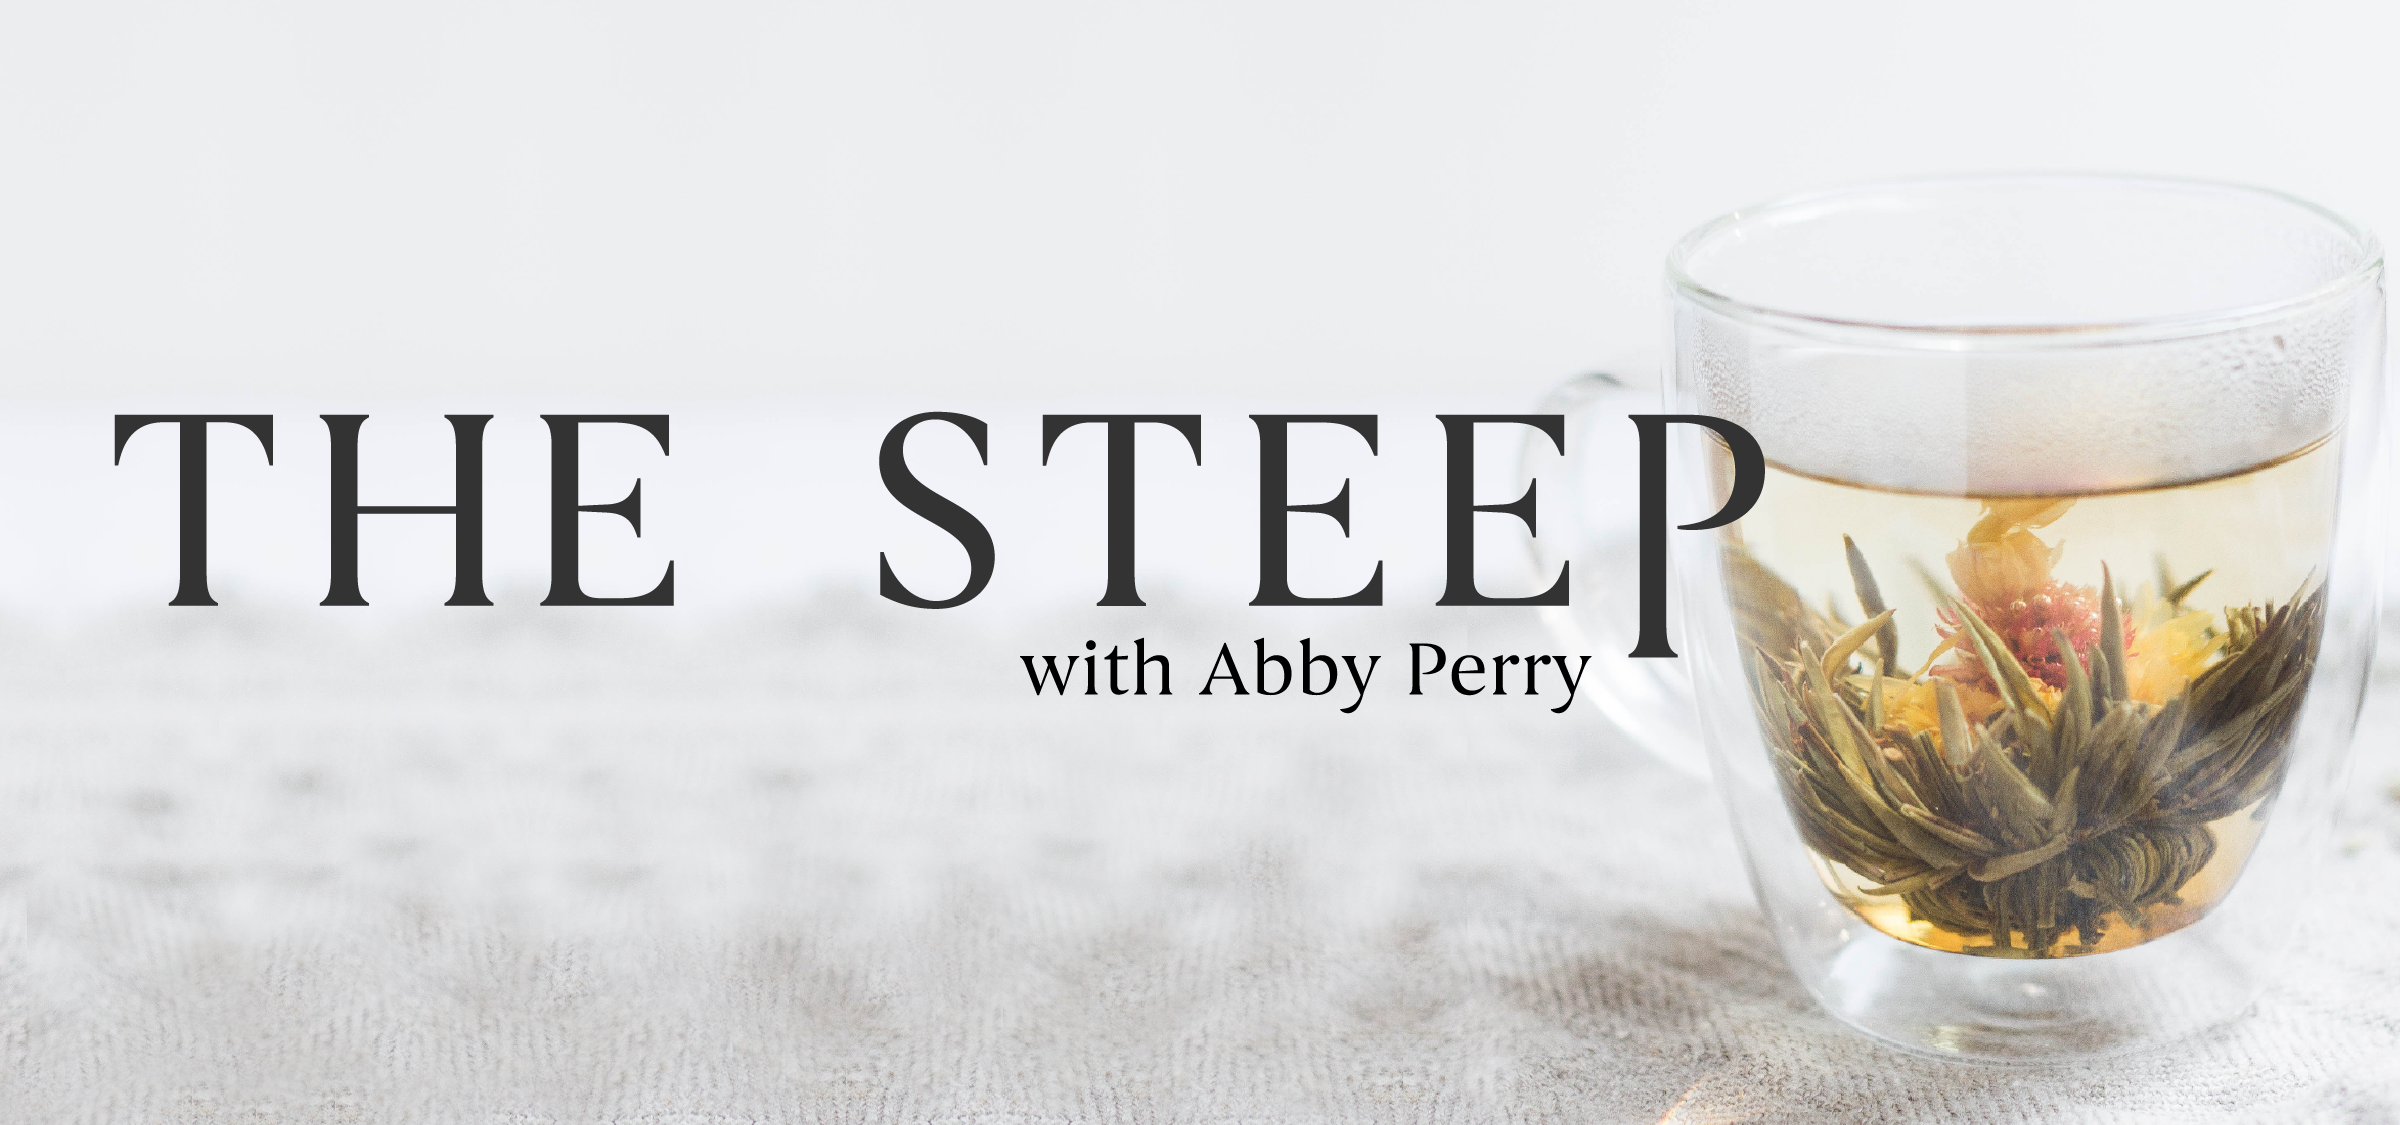 The Steep: A new column by Abby Perry